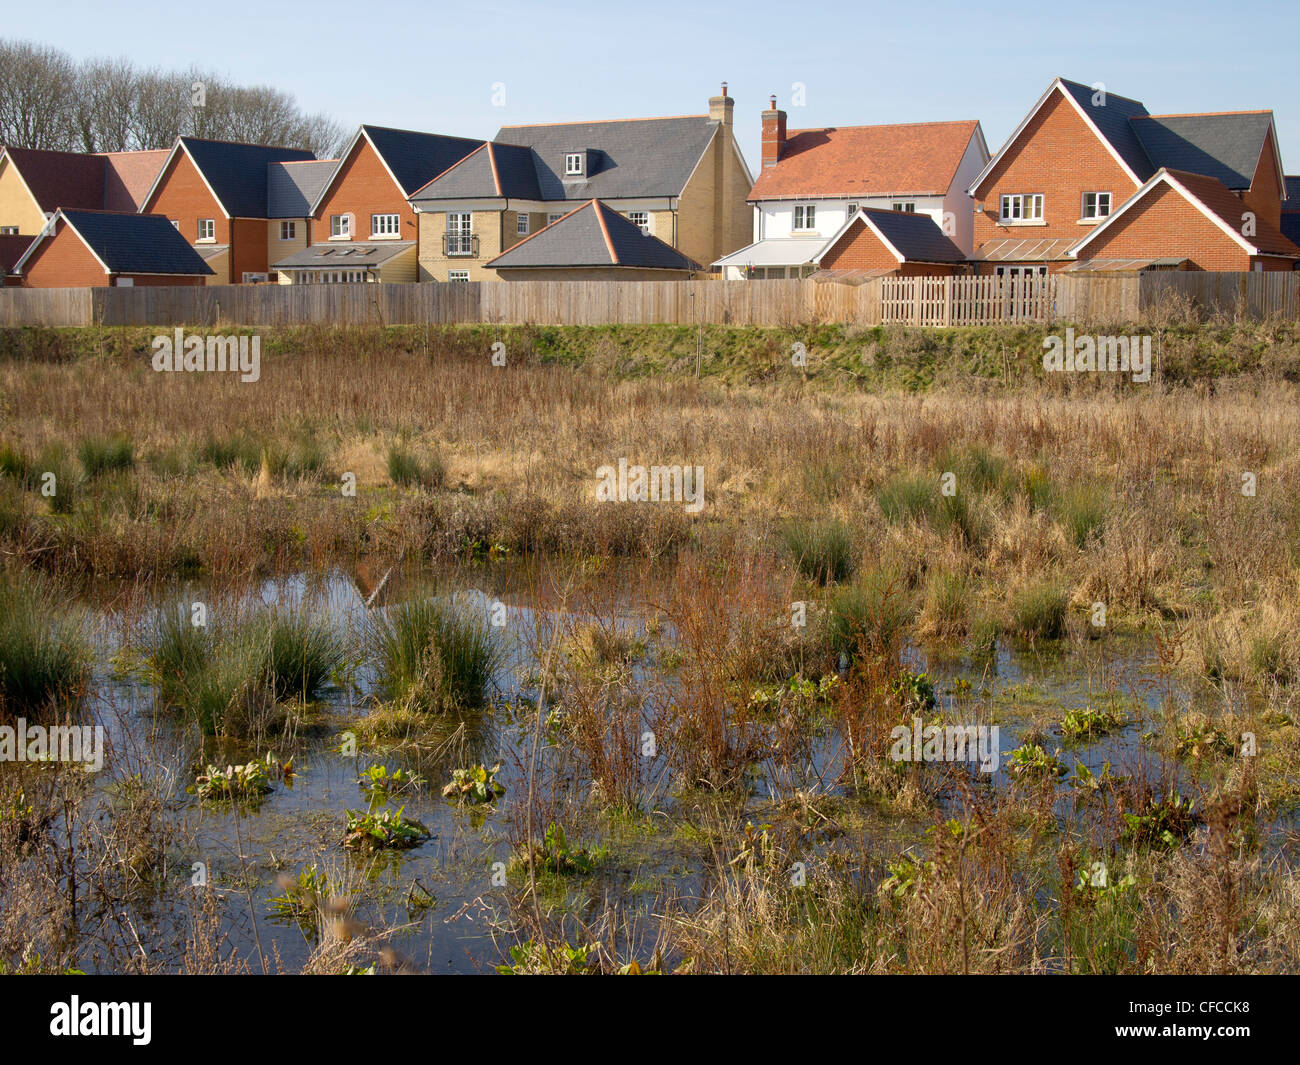 WAterlogged ground on a floodplain near new houses on a housing development in Suffolk, England. - Stock Image